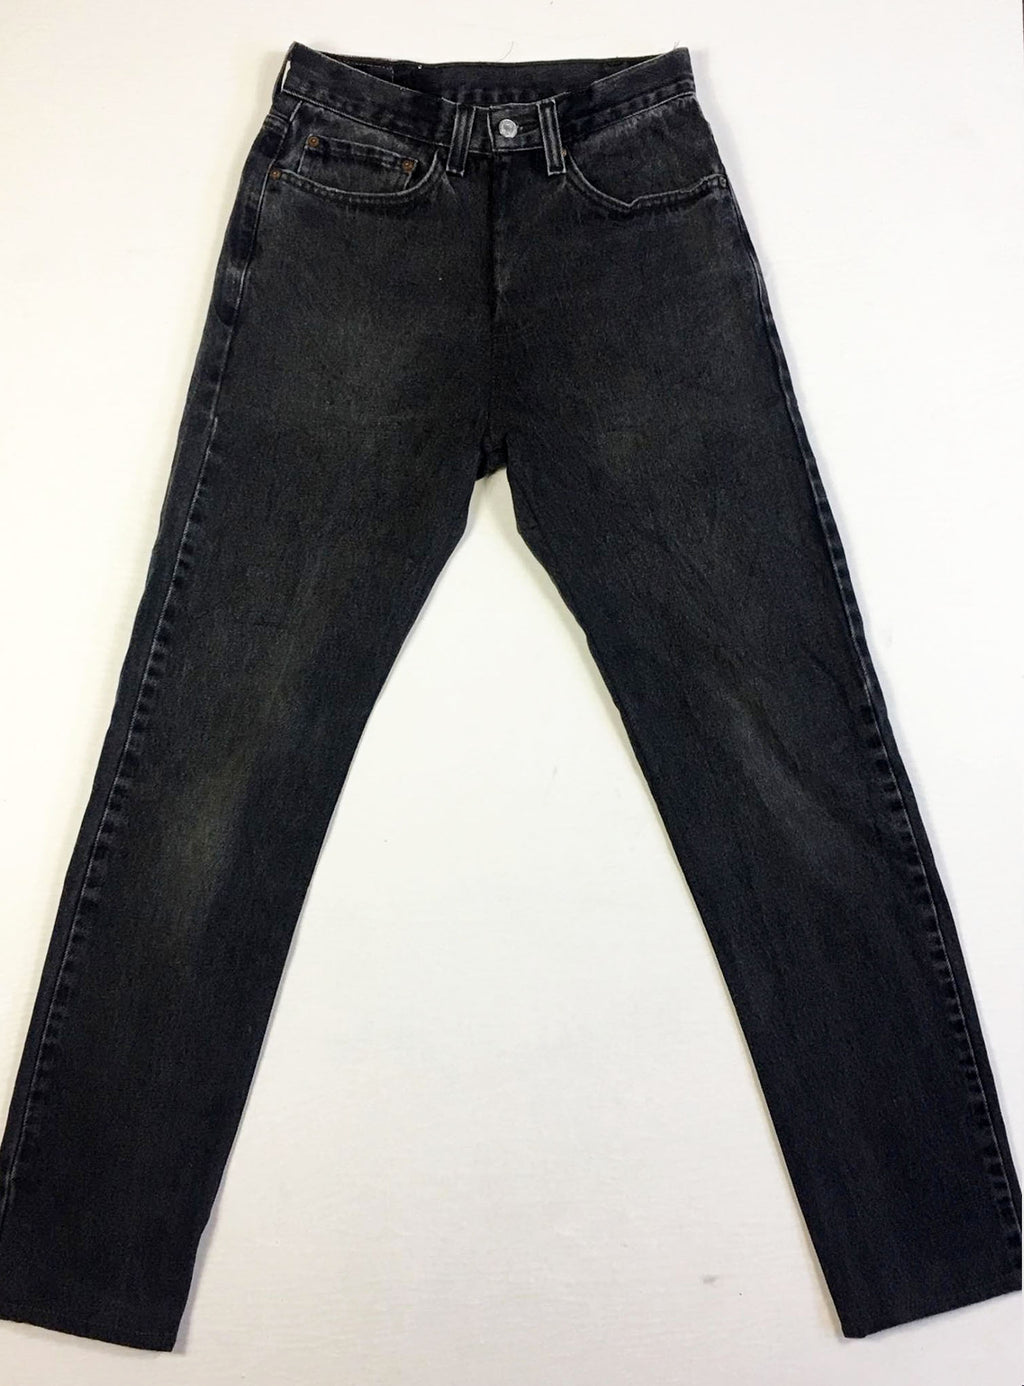 VINTAGE LEVI DENIM JEANS - BLACK WASH DENIM